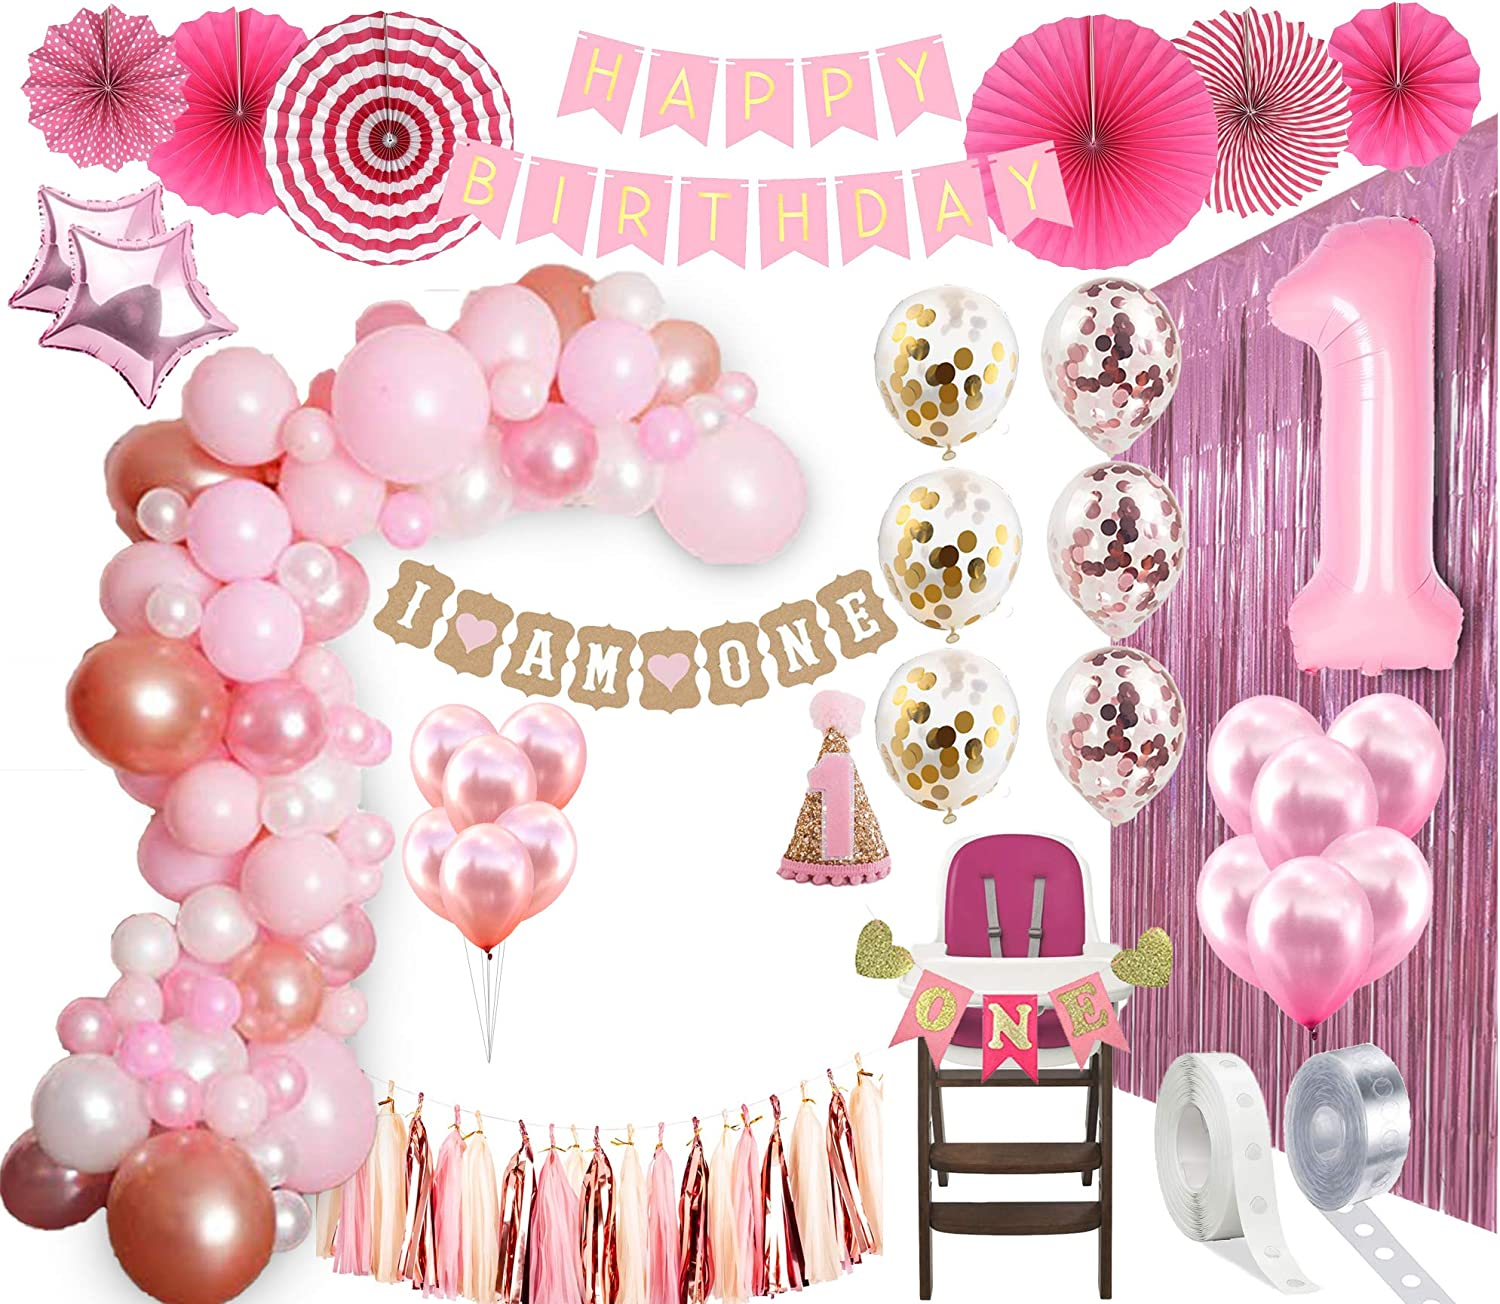 1st BIRTHDAY GIRL DECORATIONS  Balloon Arch Kit 1st Birthday Party  Supplies  Rose Gold Party Decorations   Rose Gold Confetti Balloons   Happy  First ...